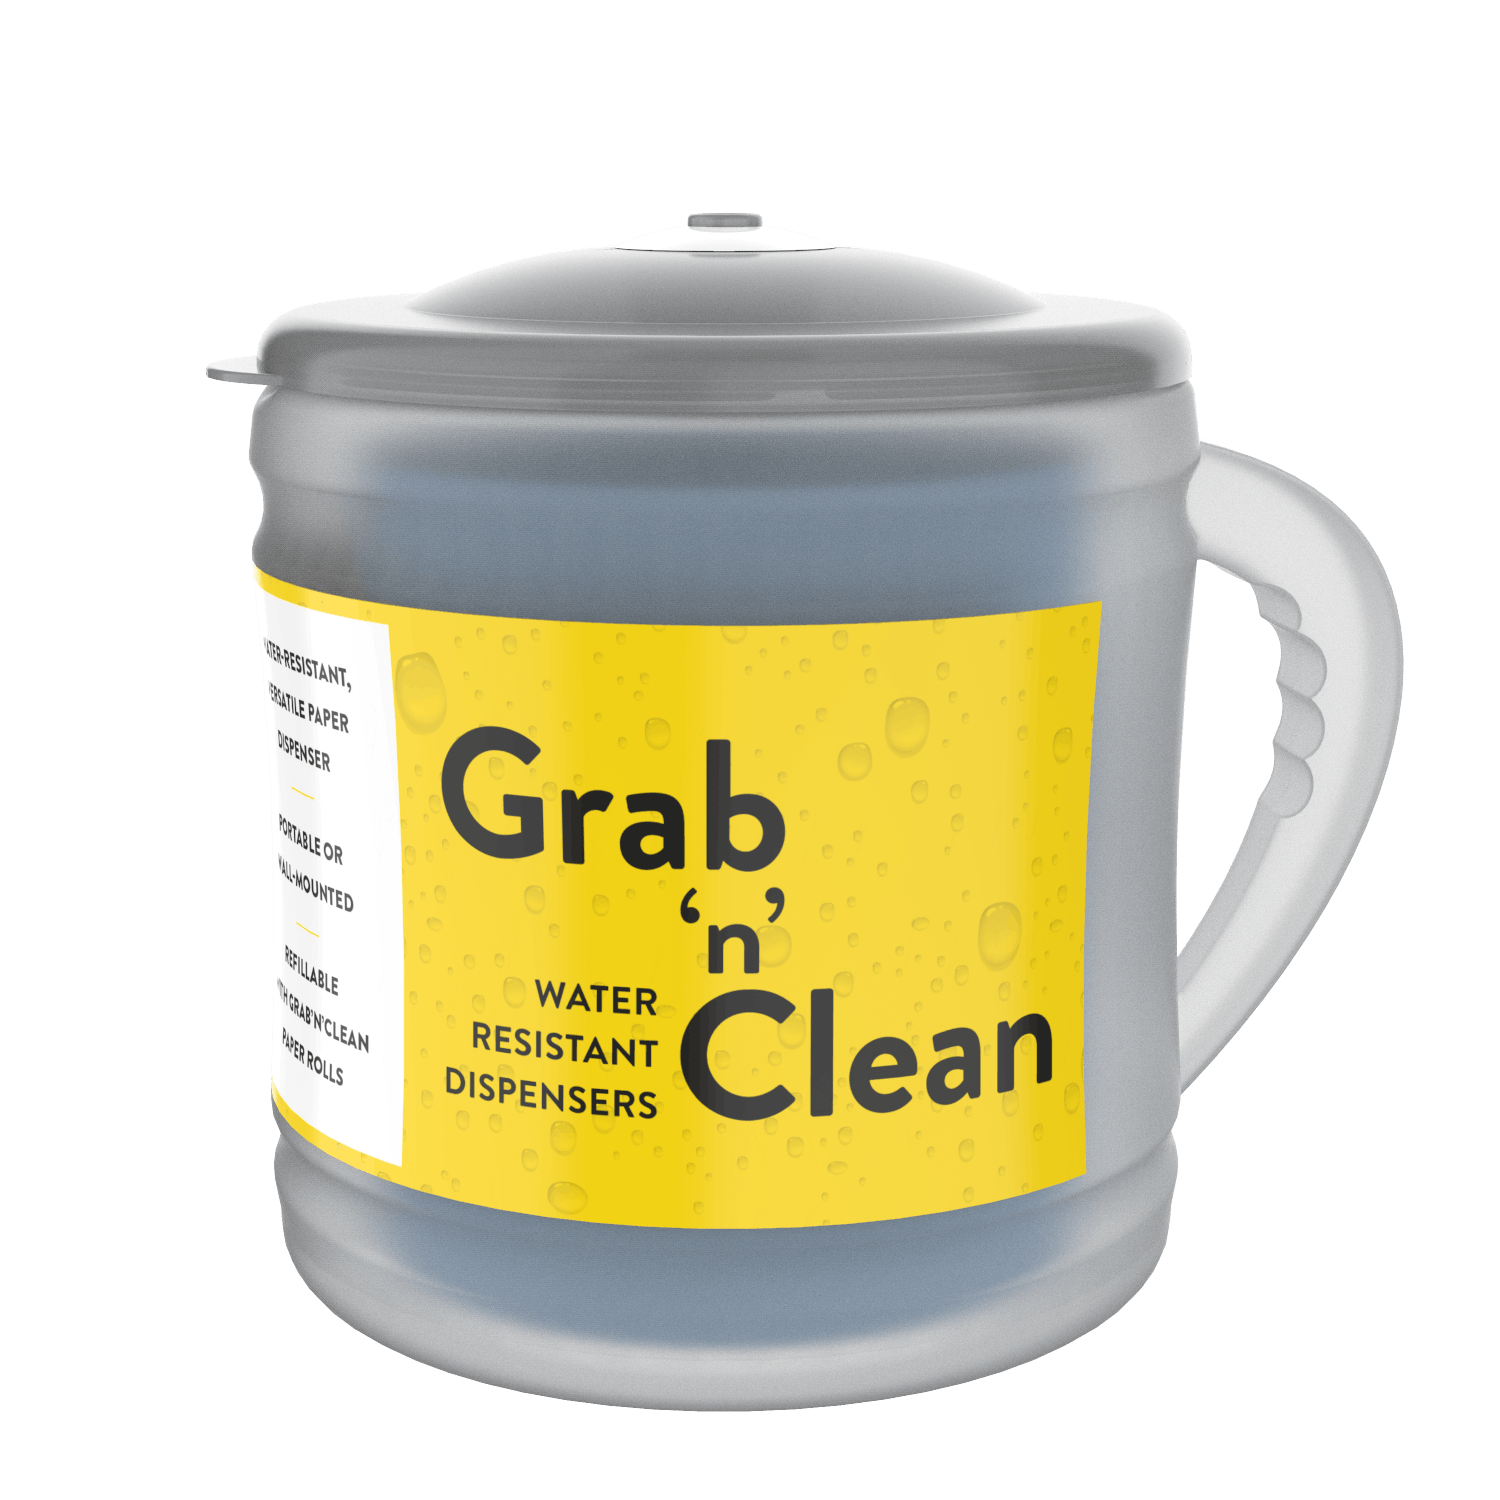 Grab 'n' Clean Portable Roll Dispenser